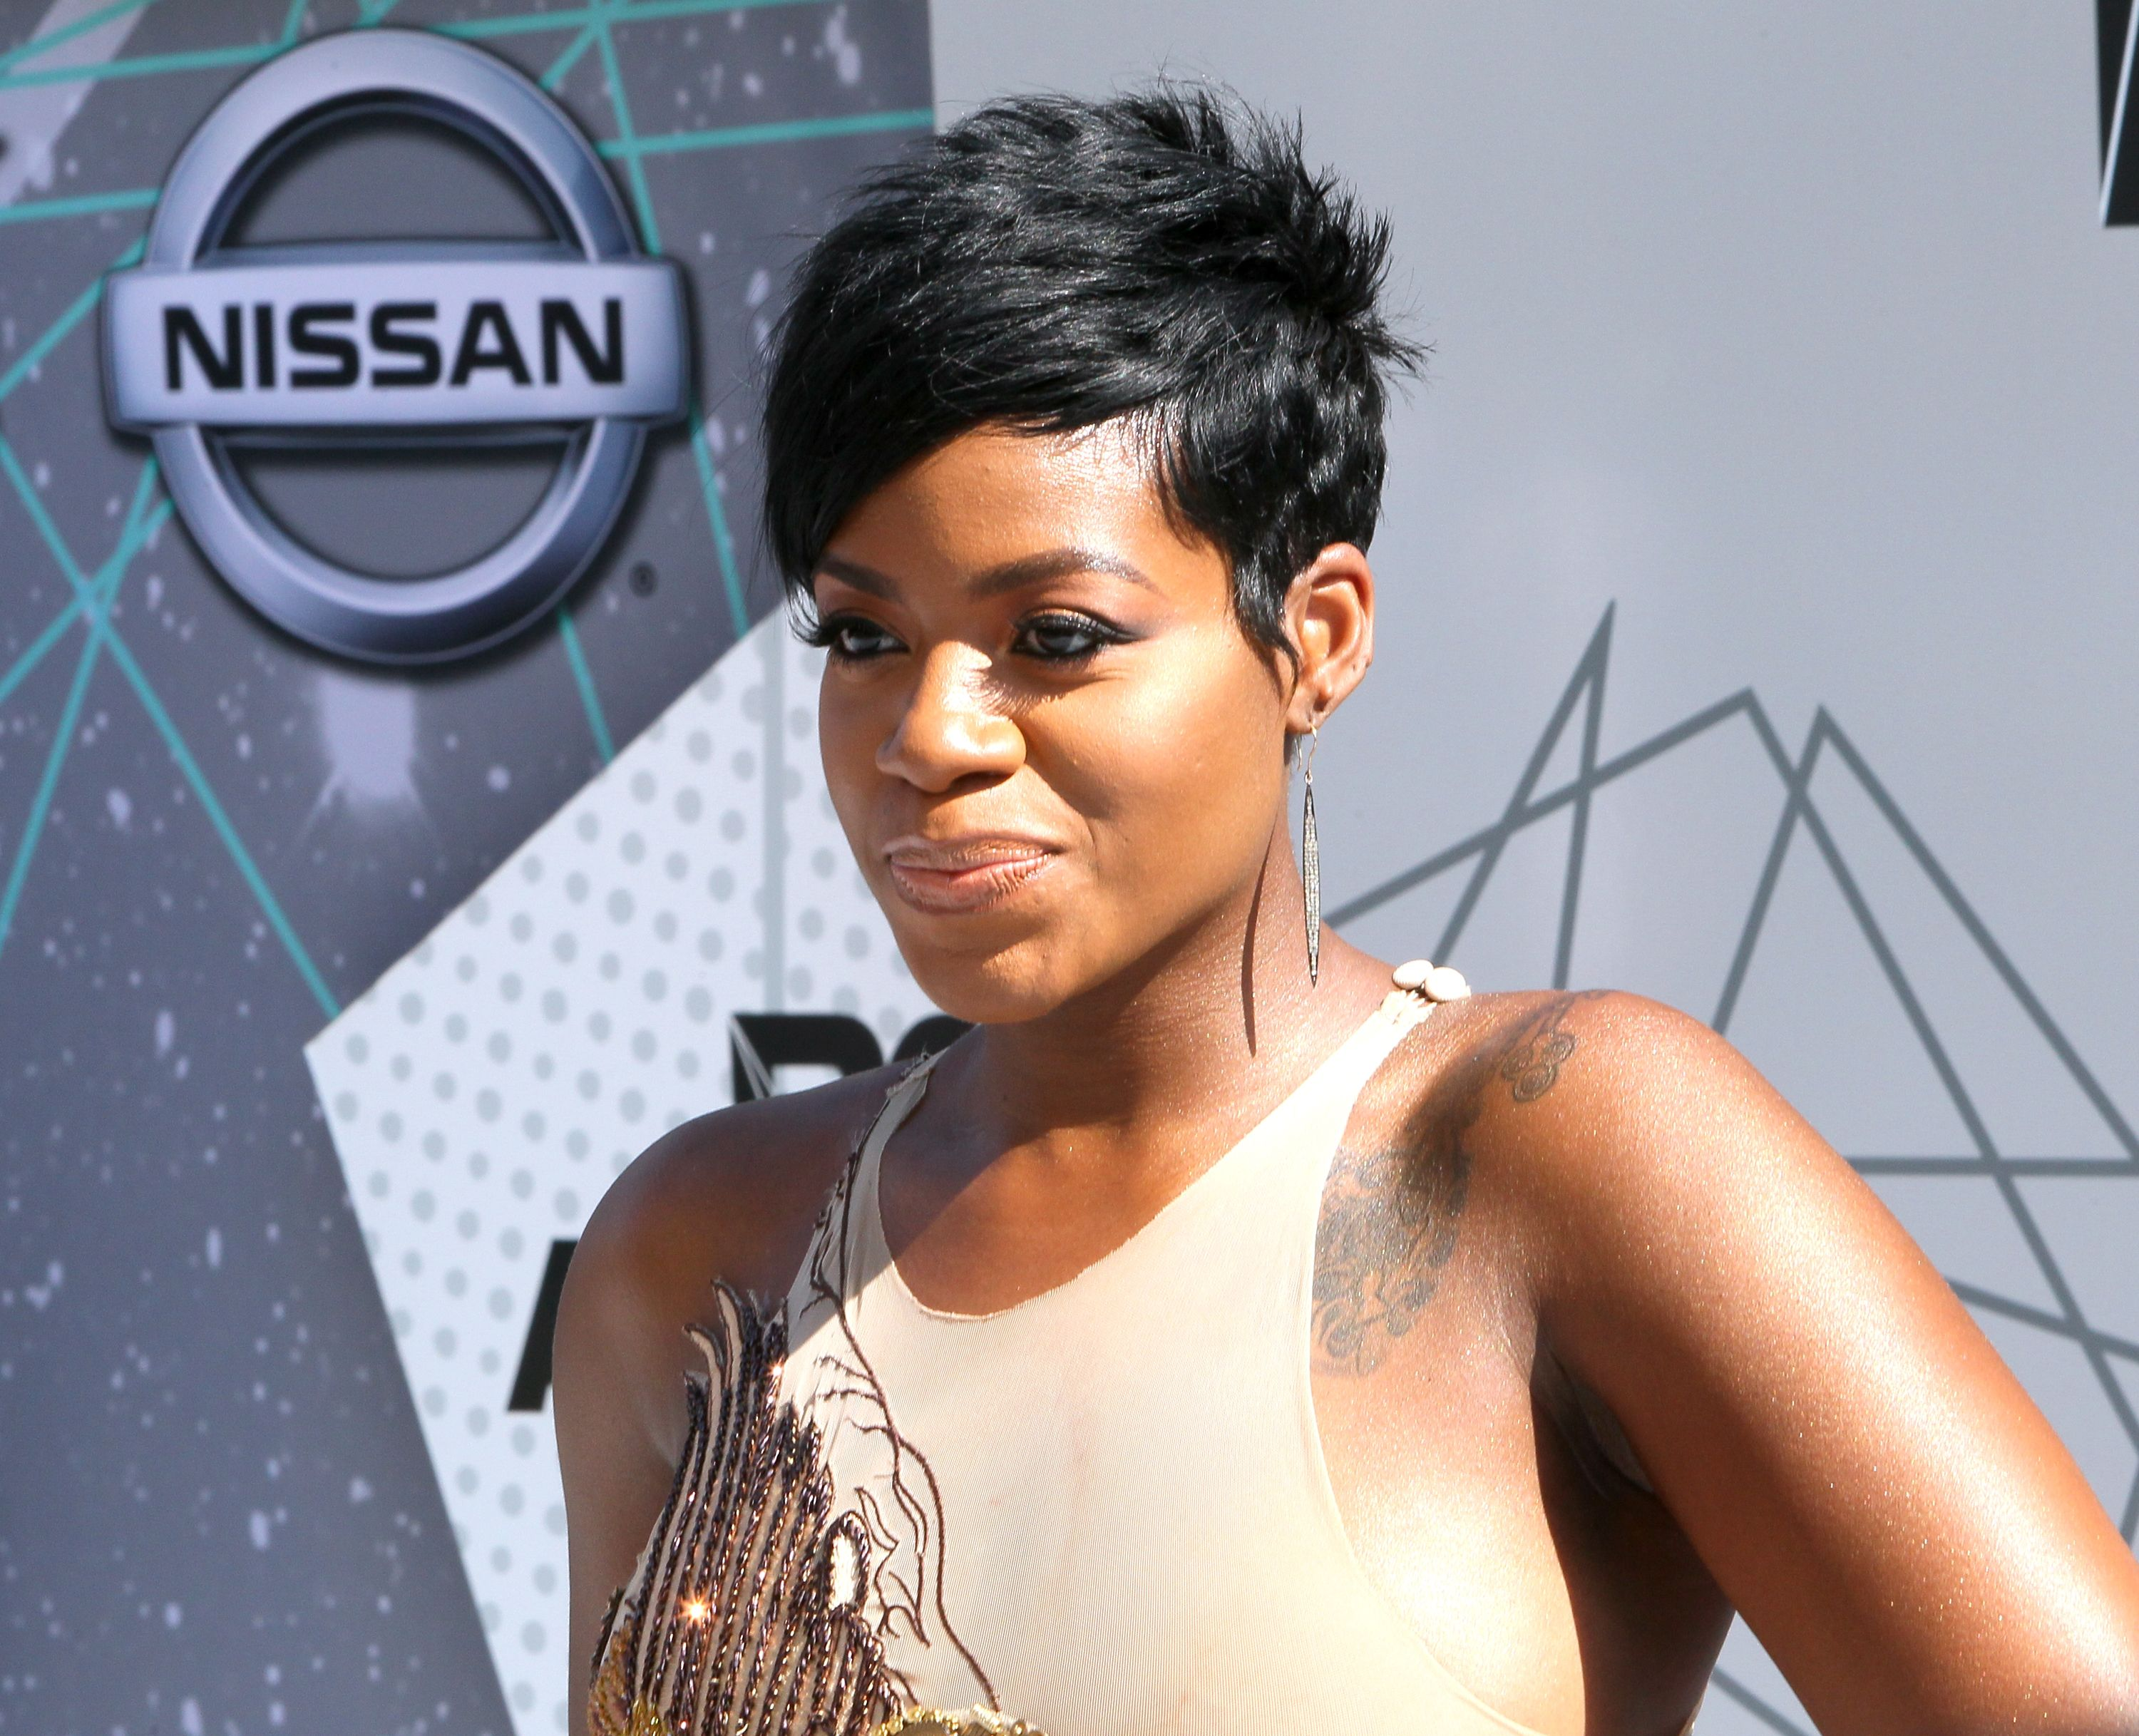 Singer Fantasia Barrino attends the 2016 BET Awards at the Microsoft Theater on June 26, 2016.   Photo: Getty Images